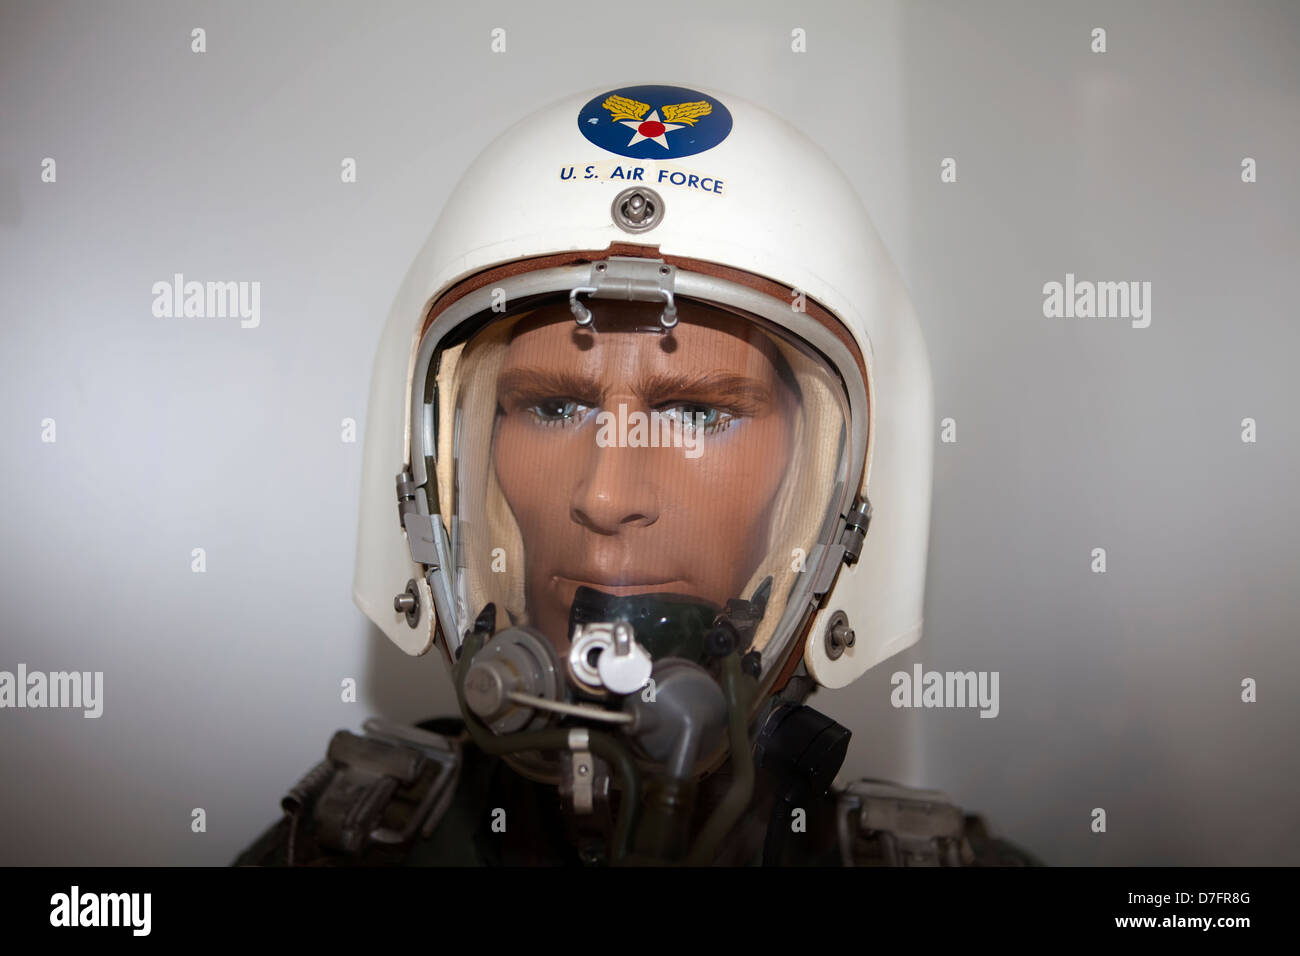 Model of a Fighter Pilot with a pressure suit, US Air Force, Aircraft Collection near Hermeskeil, Rhineland-Palatinate, - Stock Image